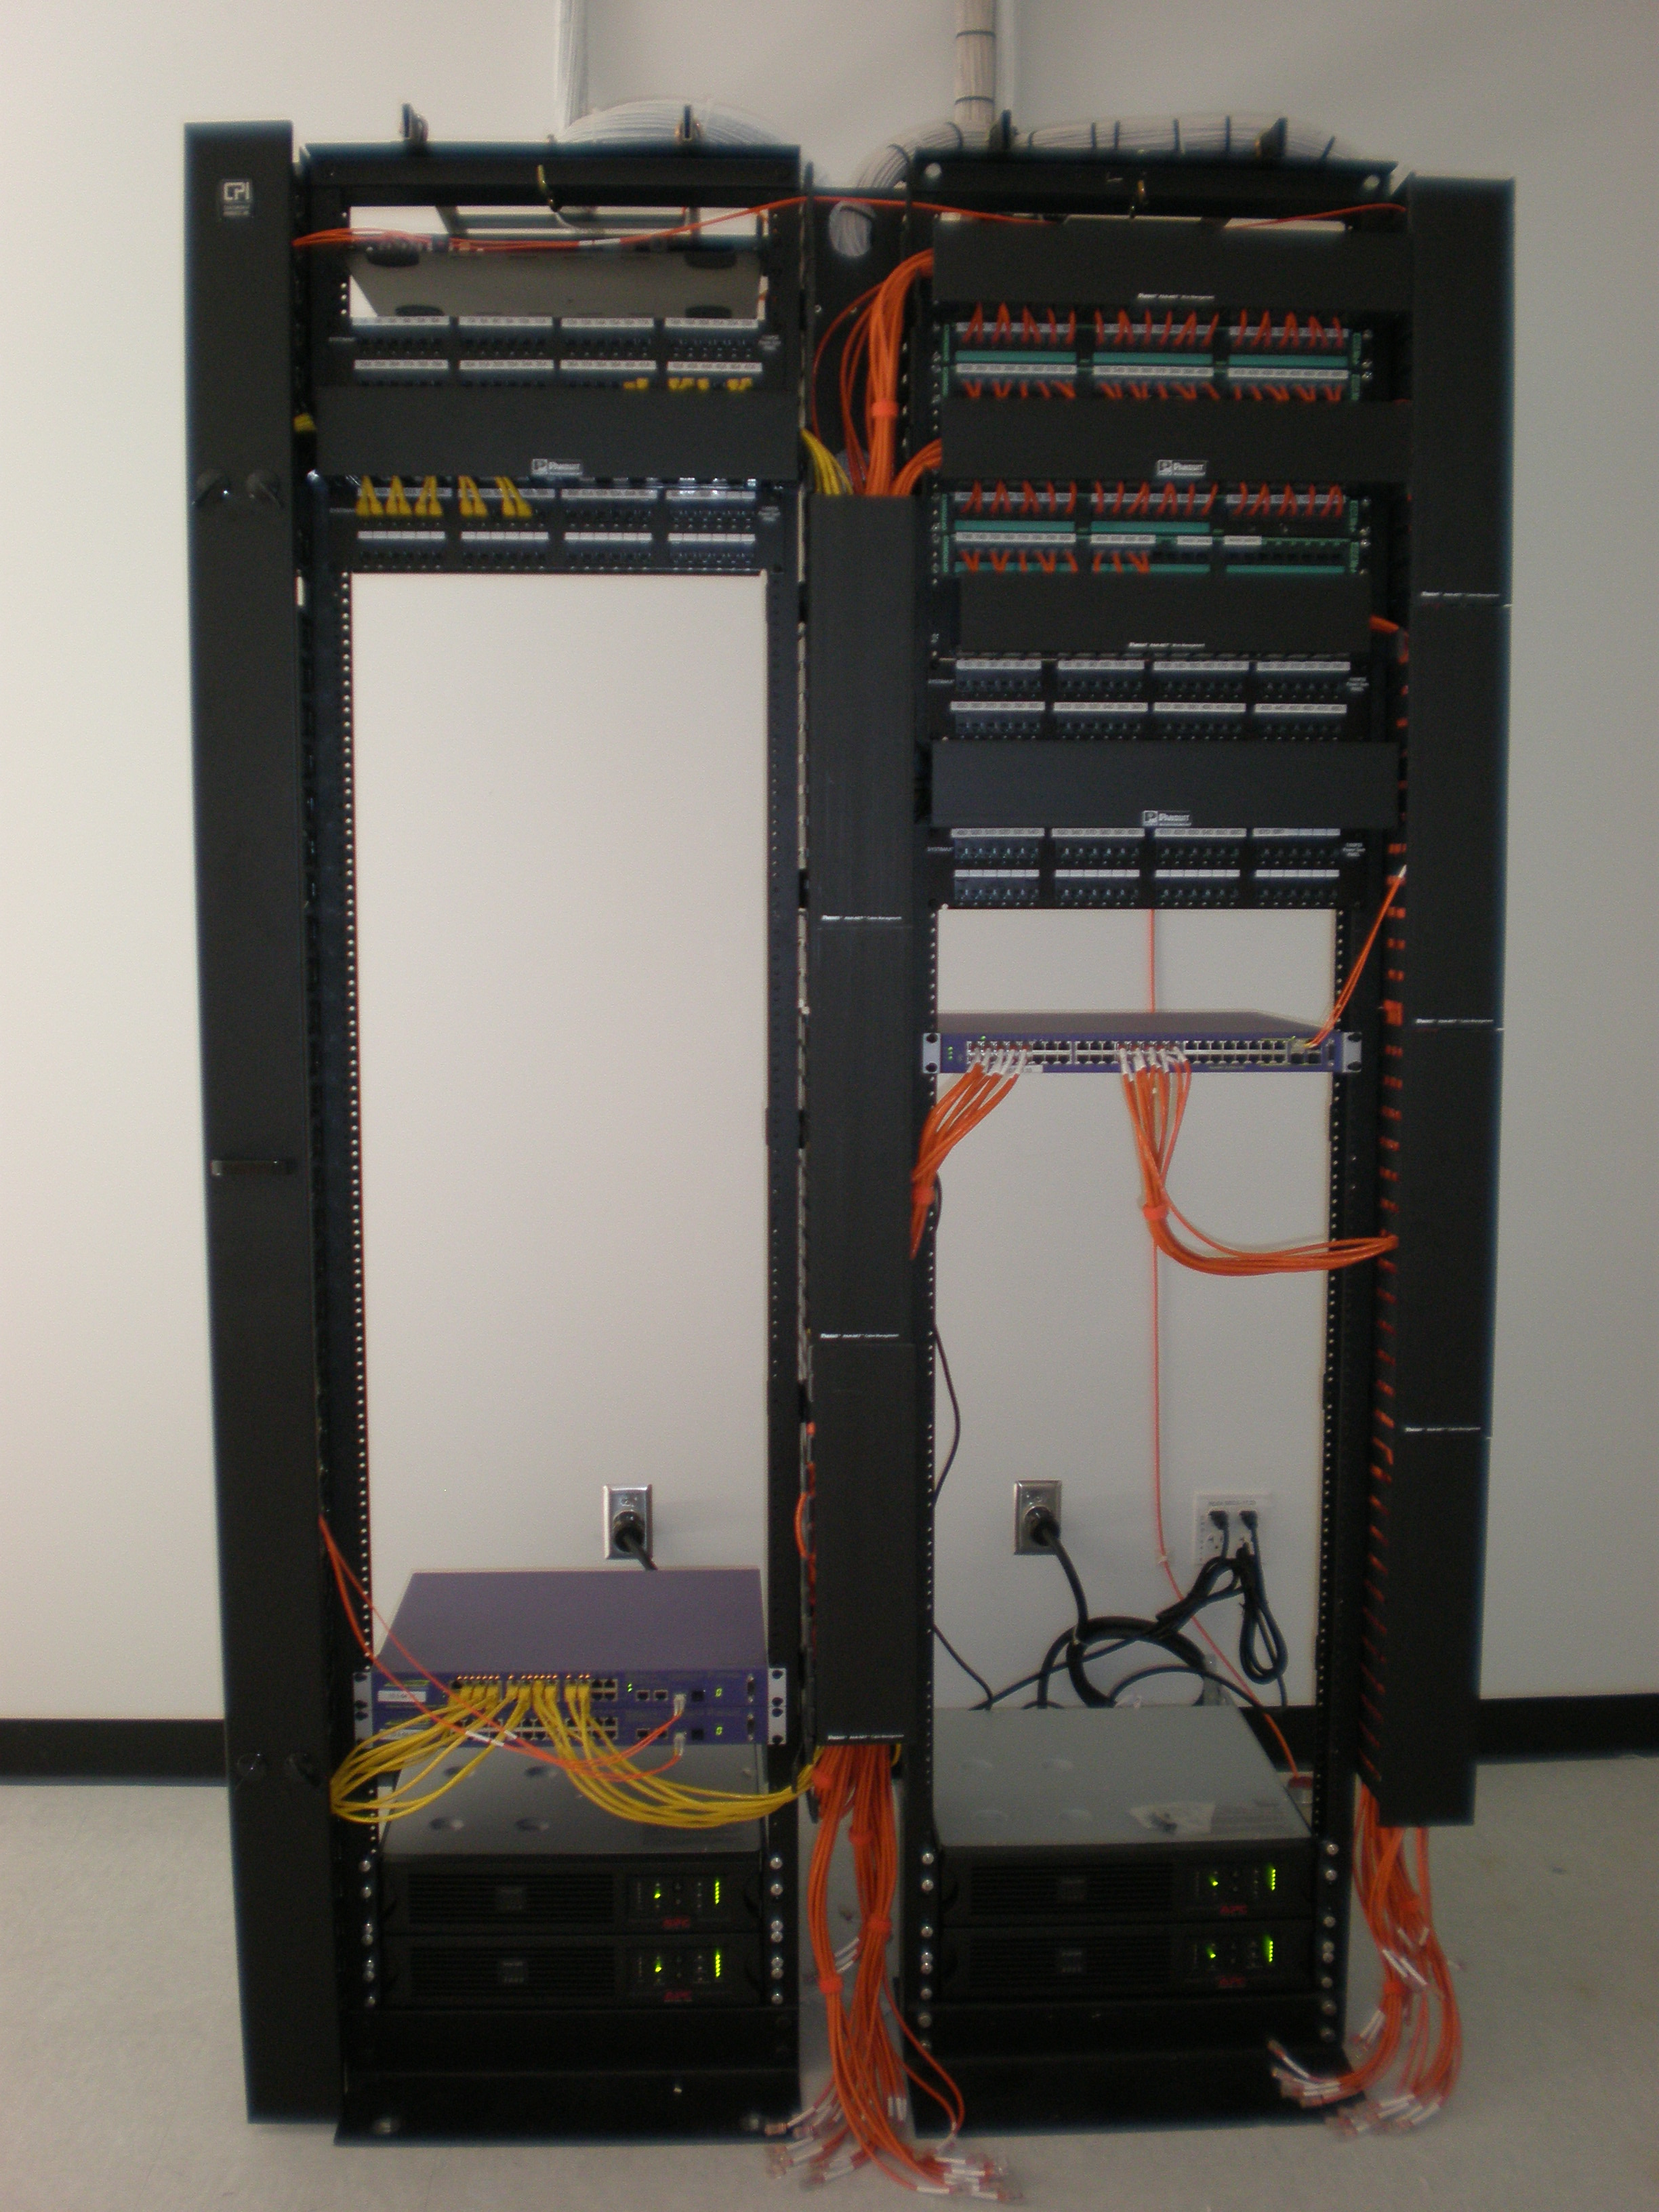 File:Panduit Pan-Net Cable Management System front.JPG ... on